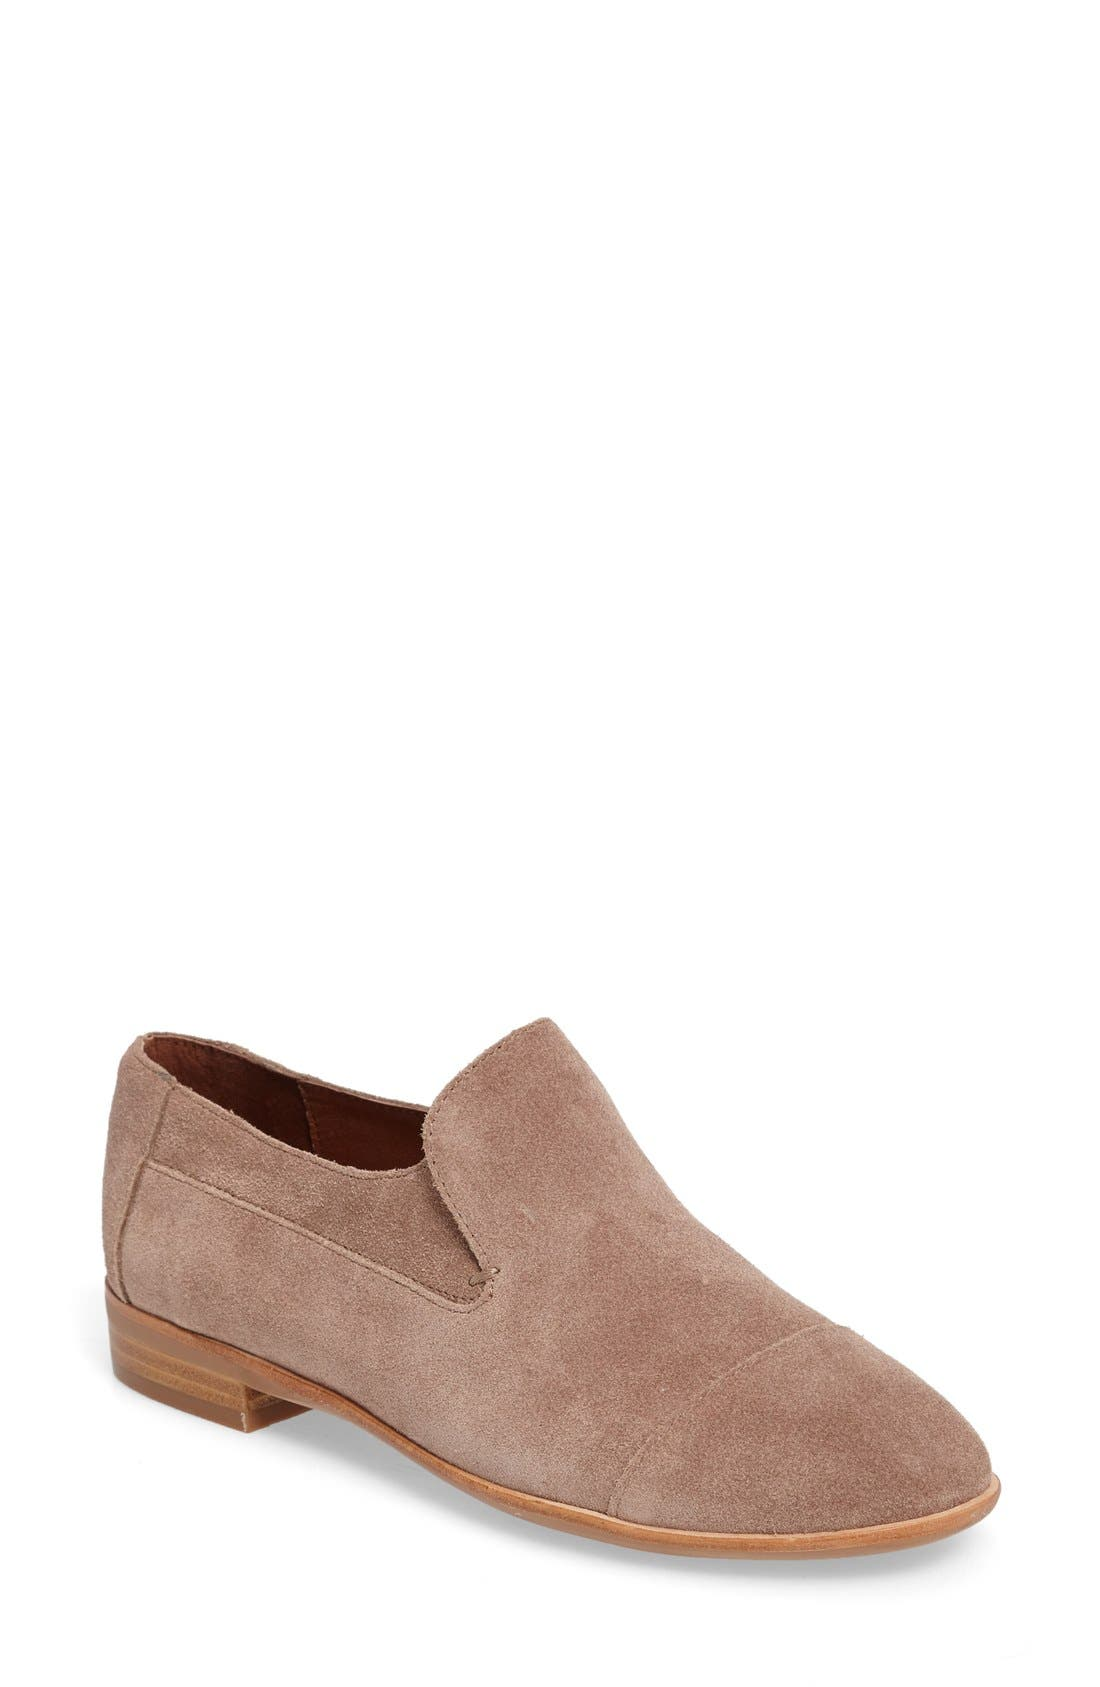 Alternate Image 1 Selected - Jeffrey Campbell 'Bryant' Cap Toe Loafer (Women)